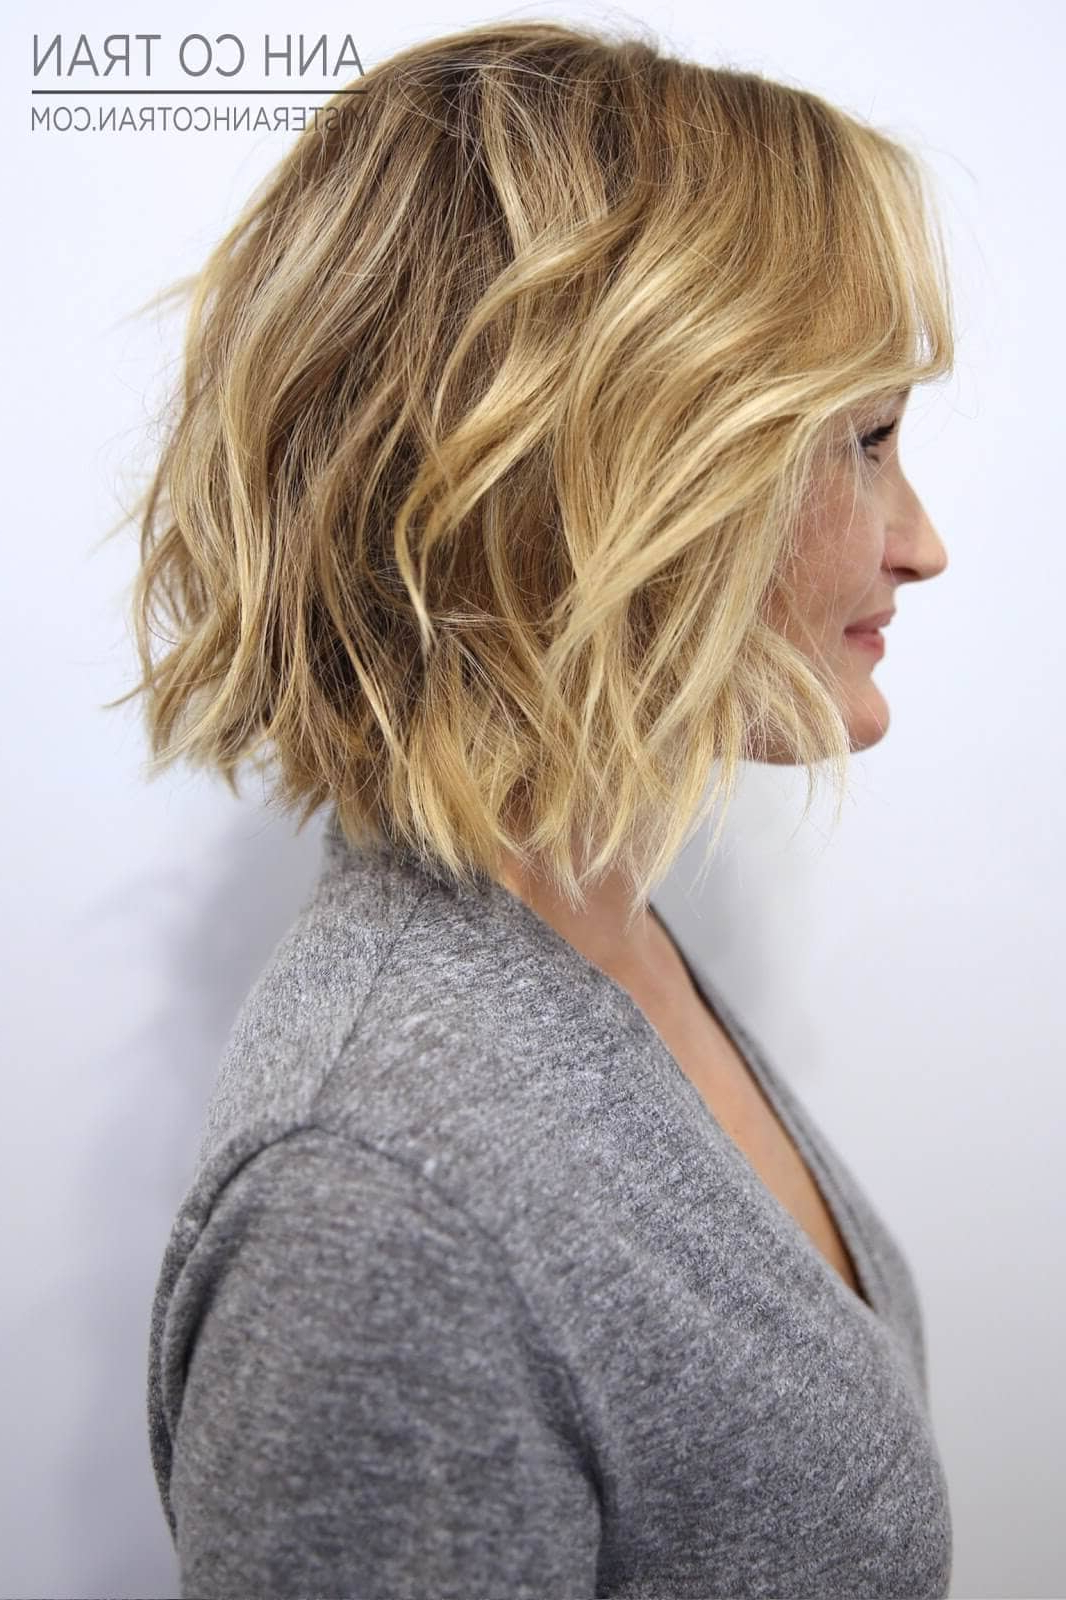 50 Ways To Wear Short Hair With Bangs For A Fresh New Look Within Short Bob Haircuts With Waves (View 15 of 20)